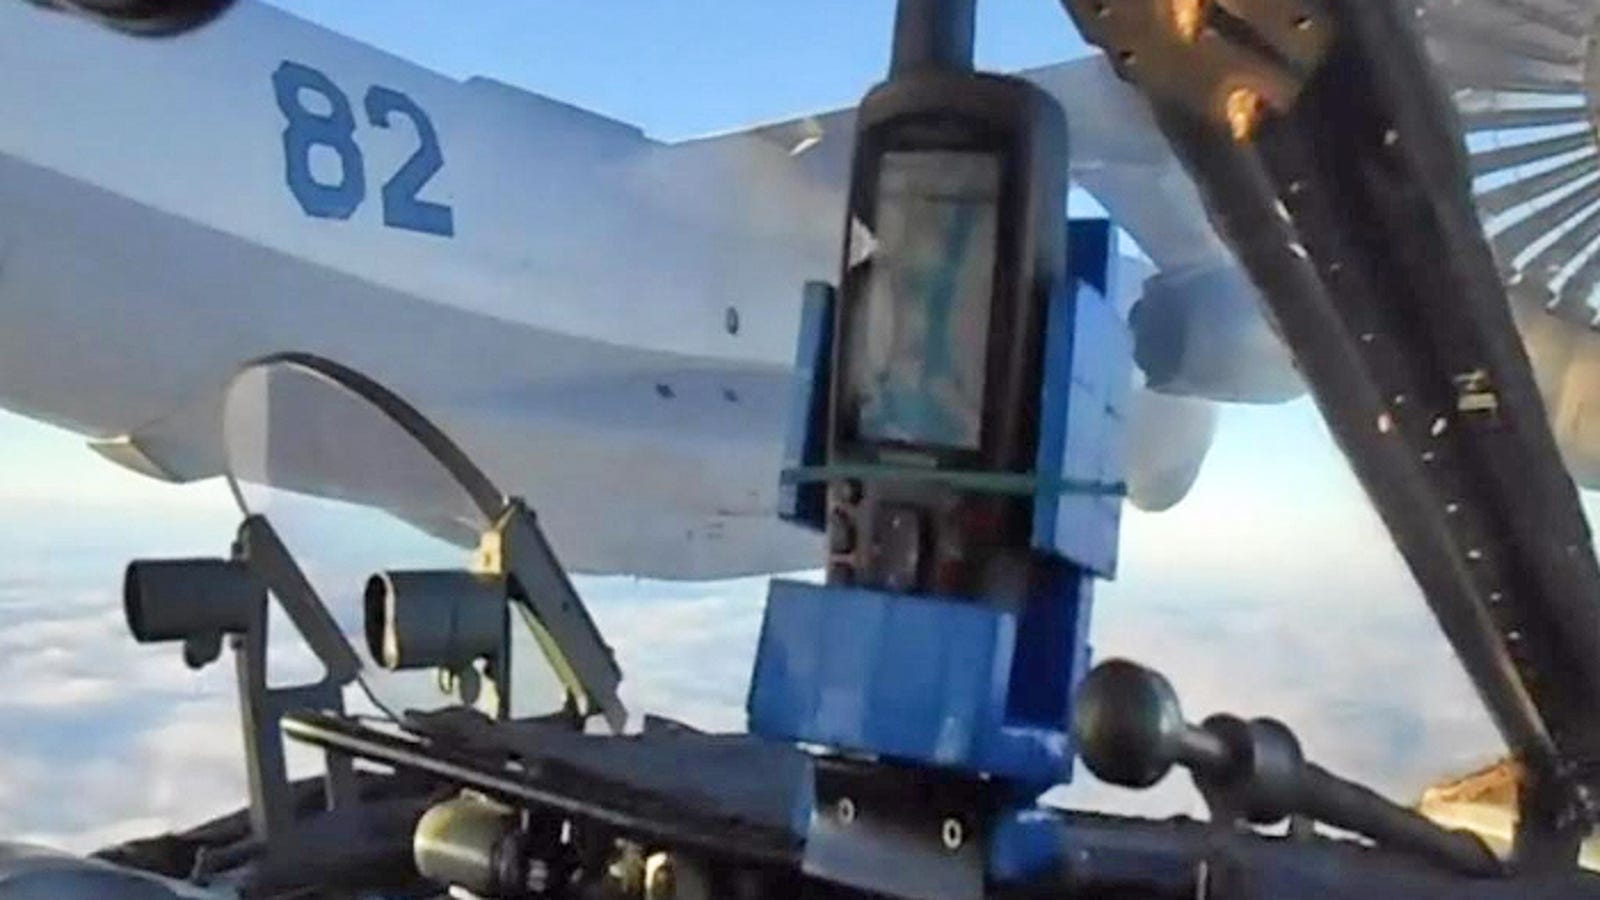 Check Out The Walmart-Grade GPS Systems In These Russian Attack Jets